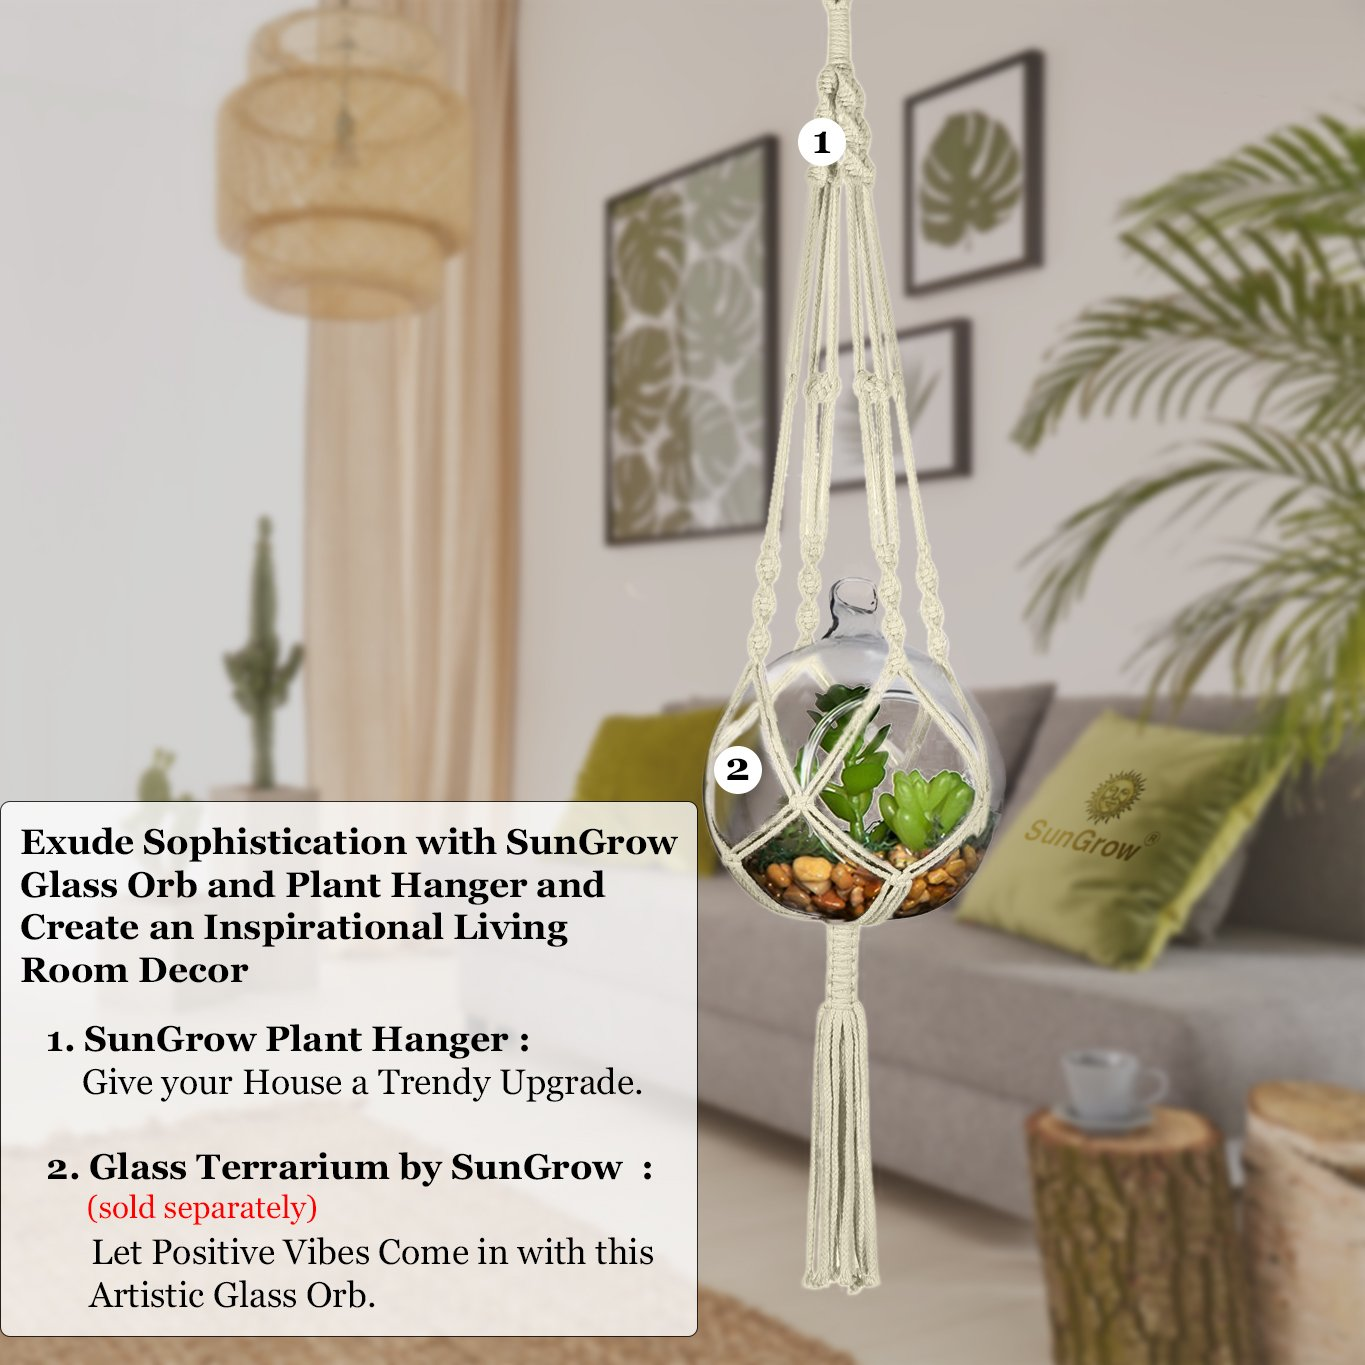 "Indoor-Outdoor Macrame Plant Hanger - All Natural Hemp Rope Braided Securely to Hold your Houseplants - Bird Feeder and Plant Holder by SunGrow - Extends up to a Length of 41"" and 10"" in Diameter"